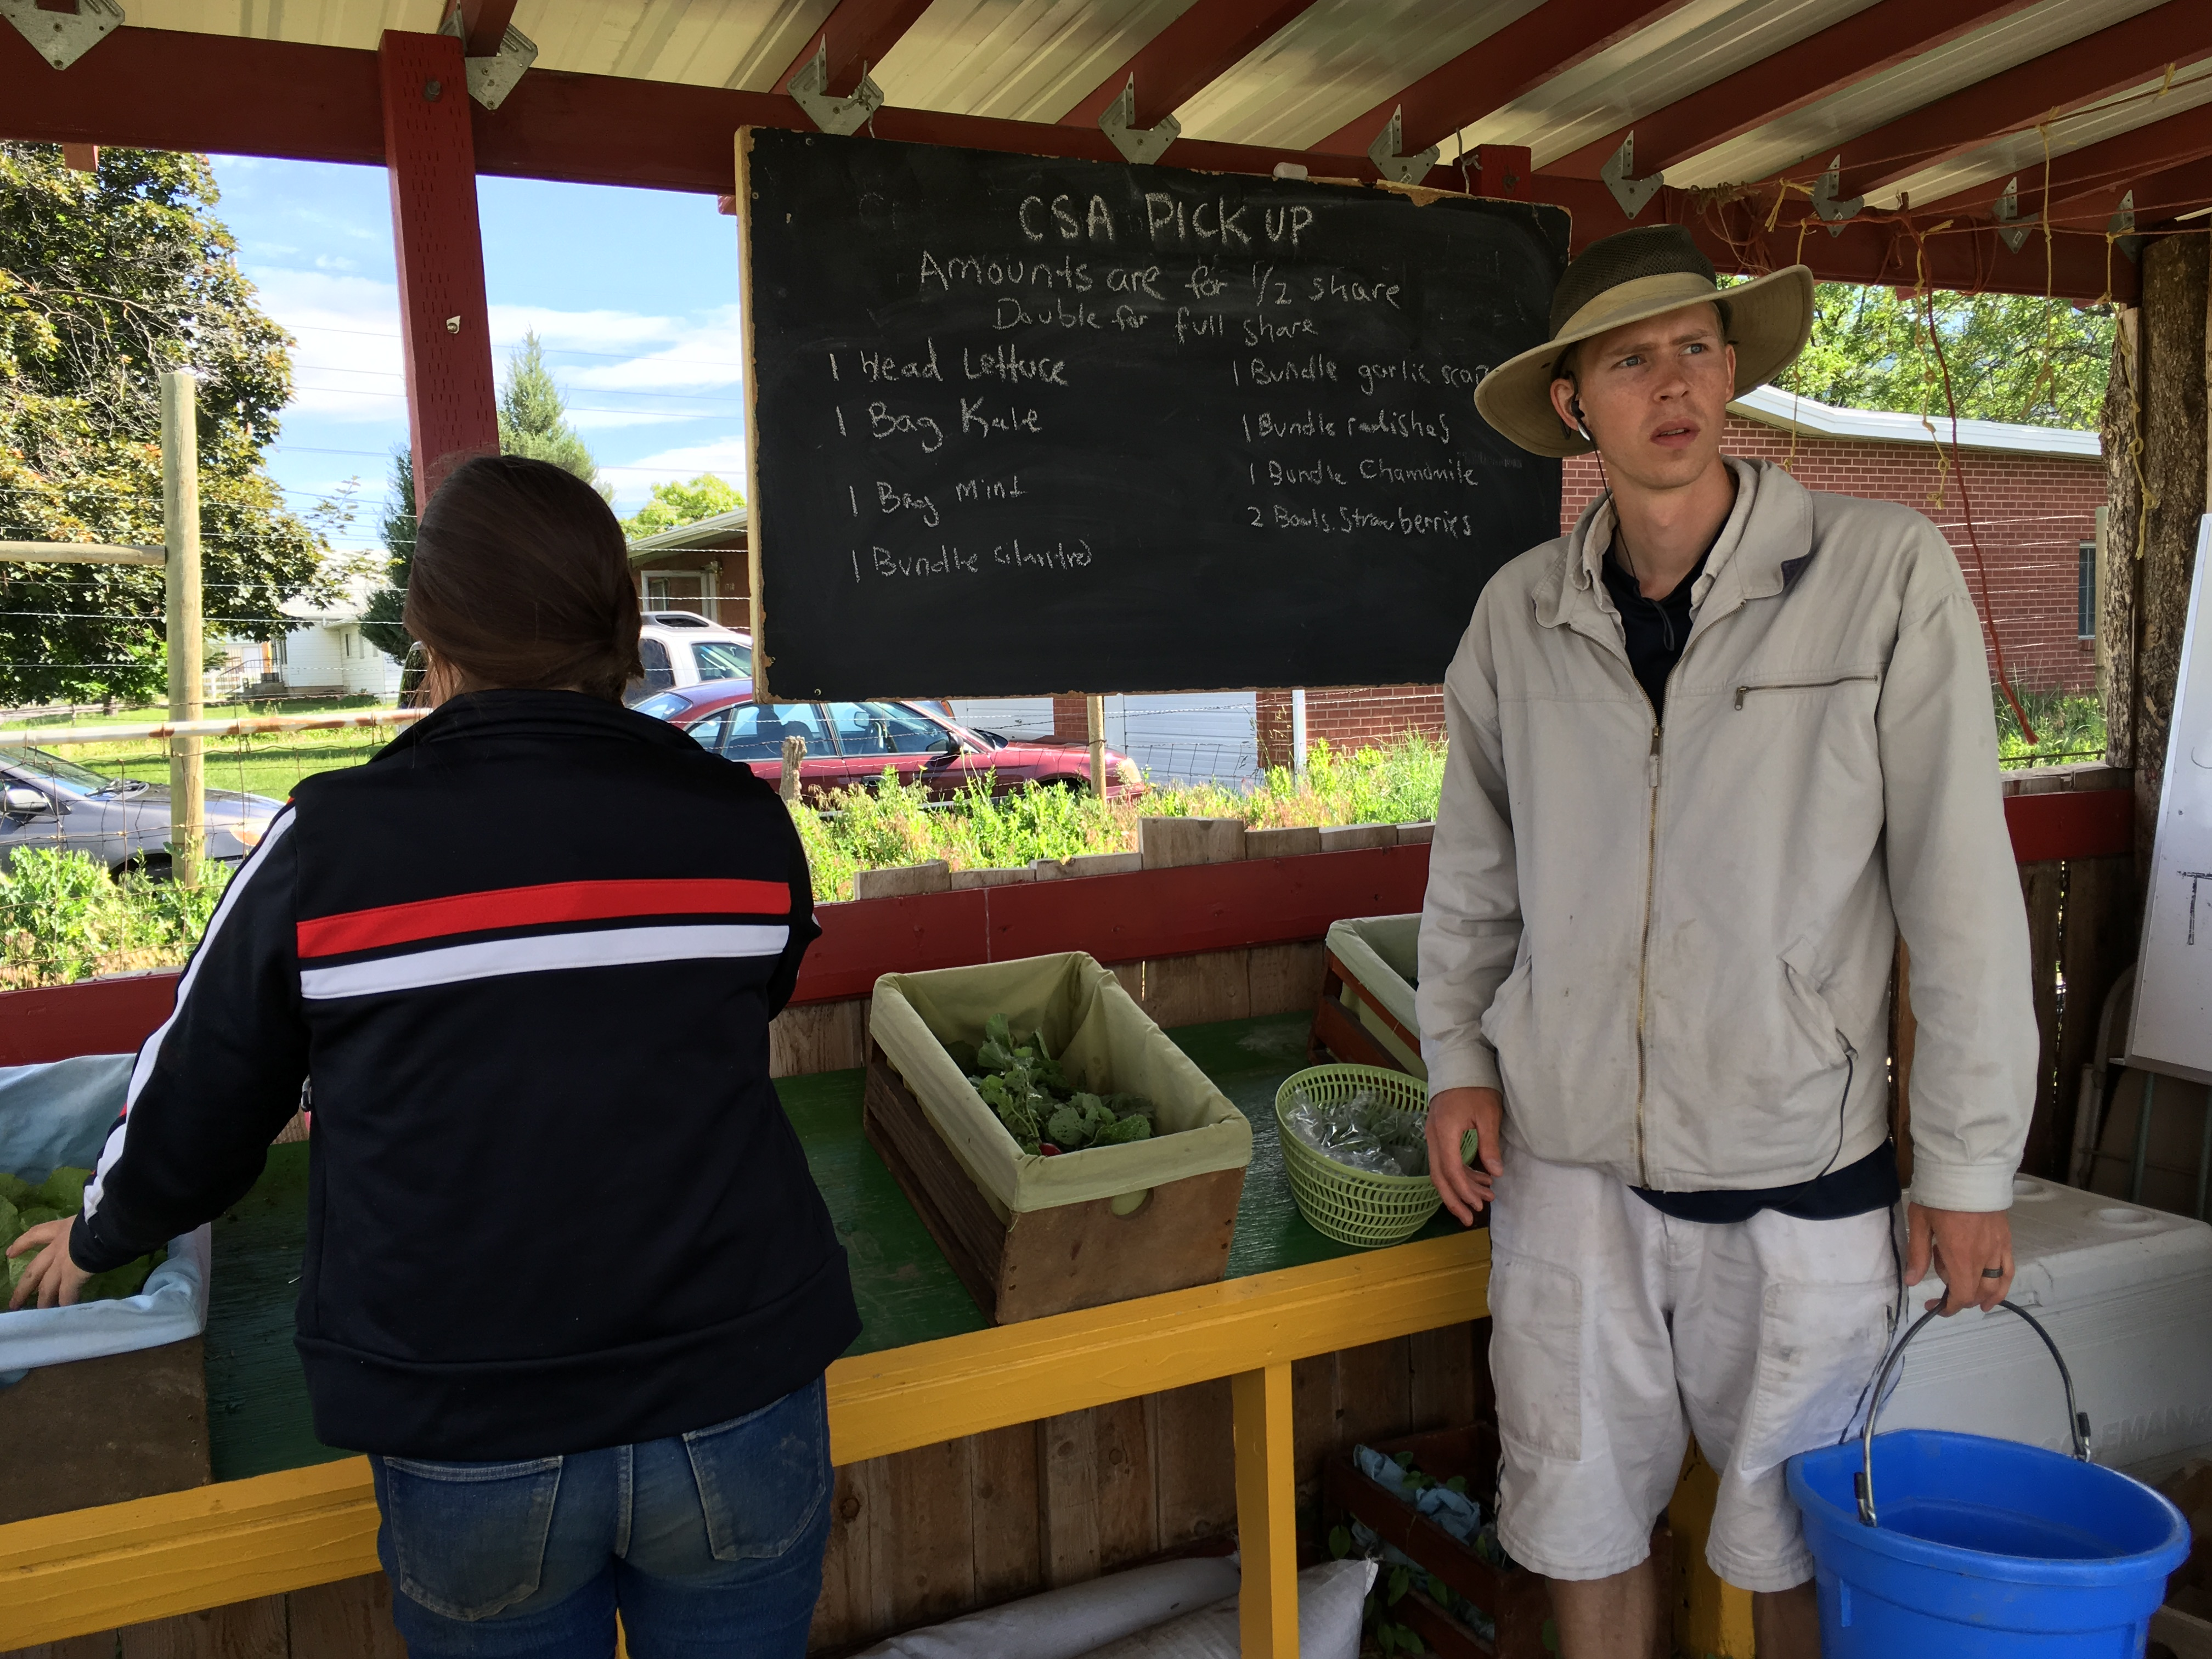 RESEARCH AT USU SHOWS BENEFITS OF COMMUNITY SUPPORTED AGRICULTUR